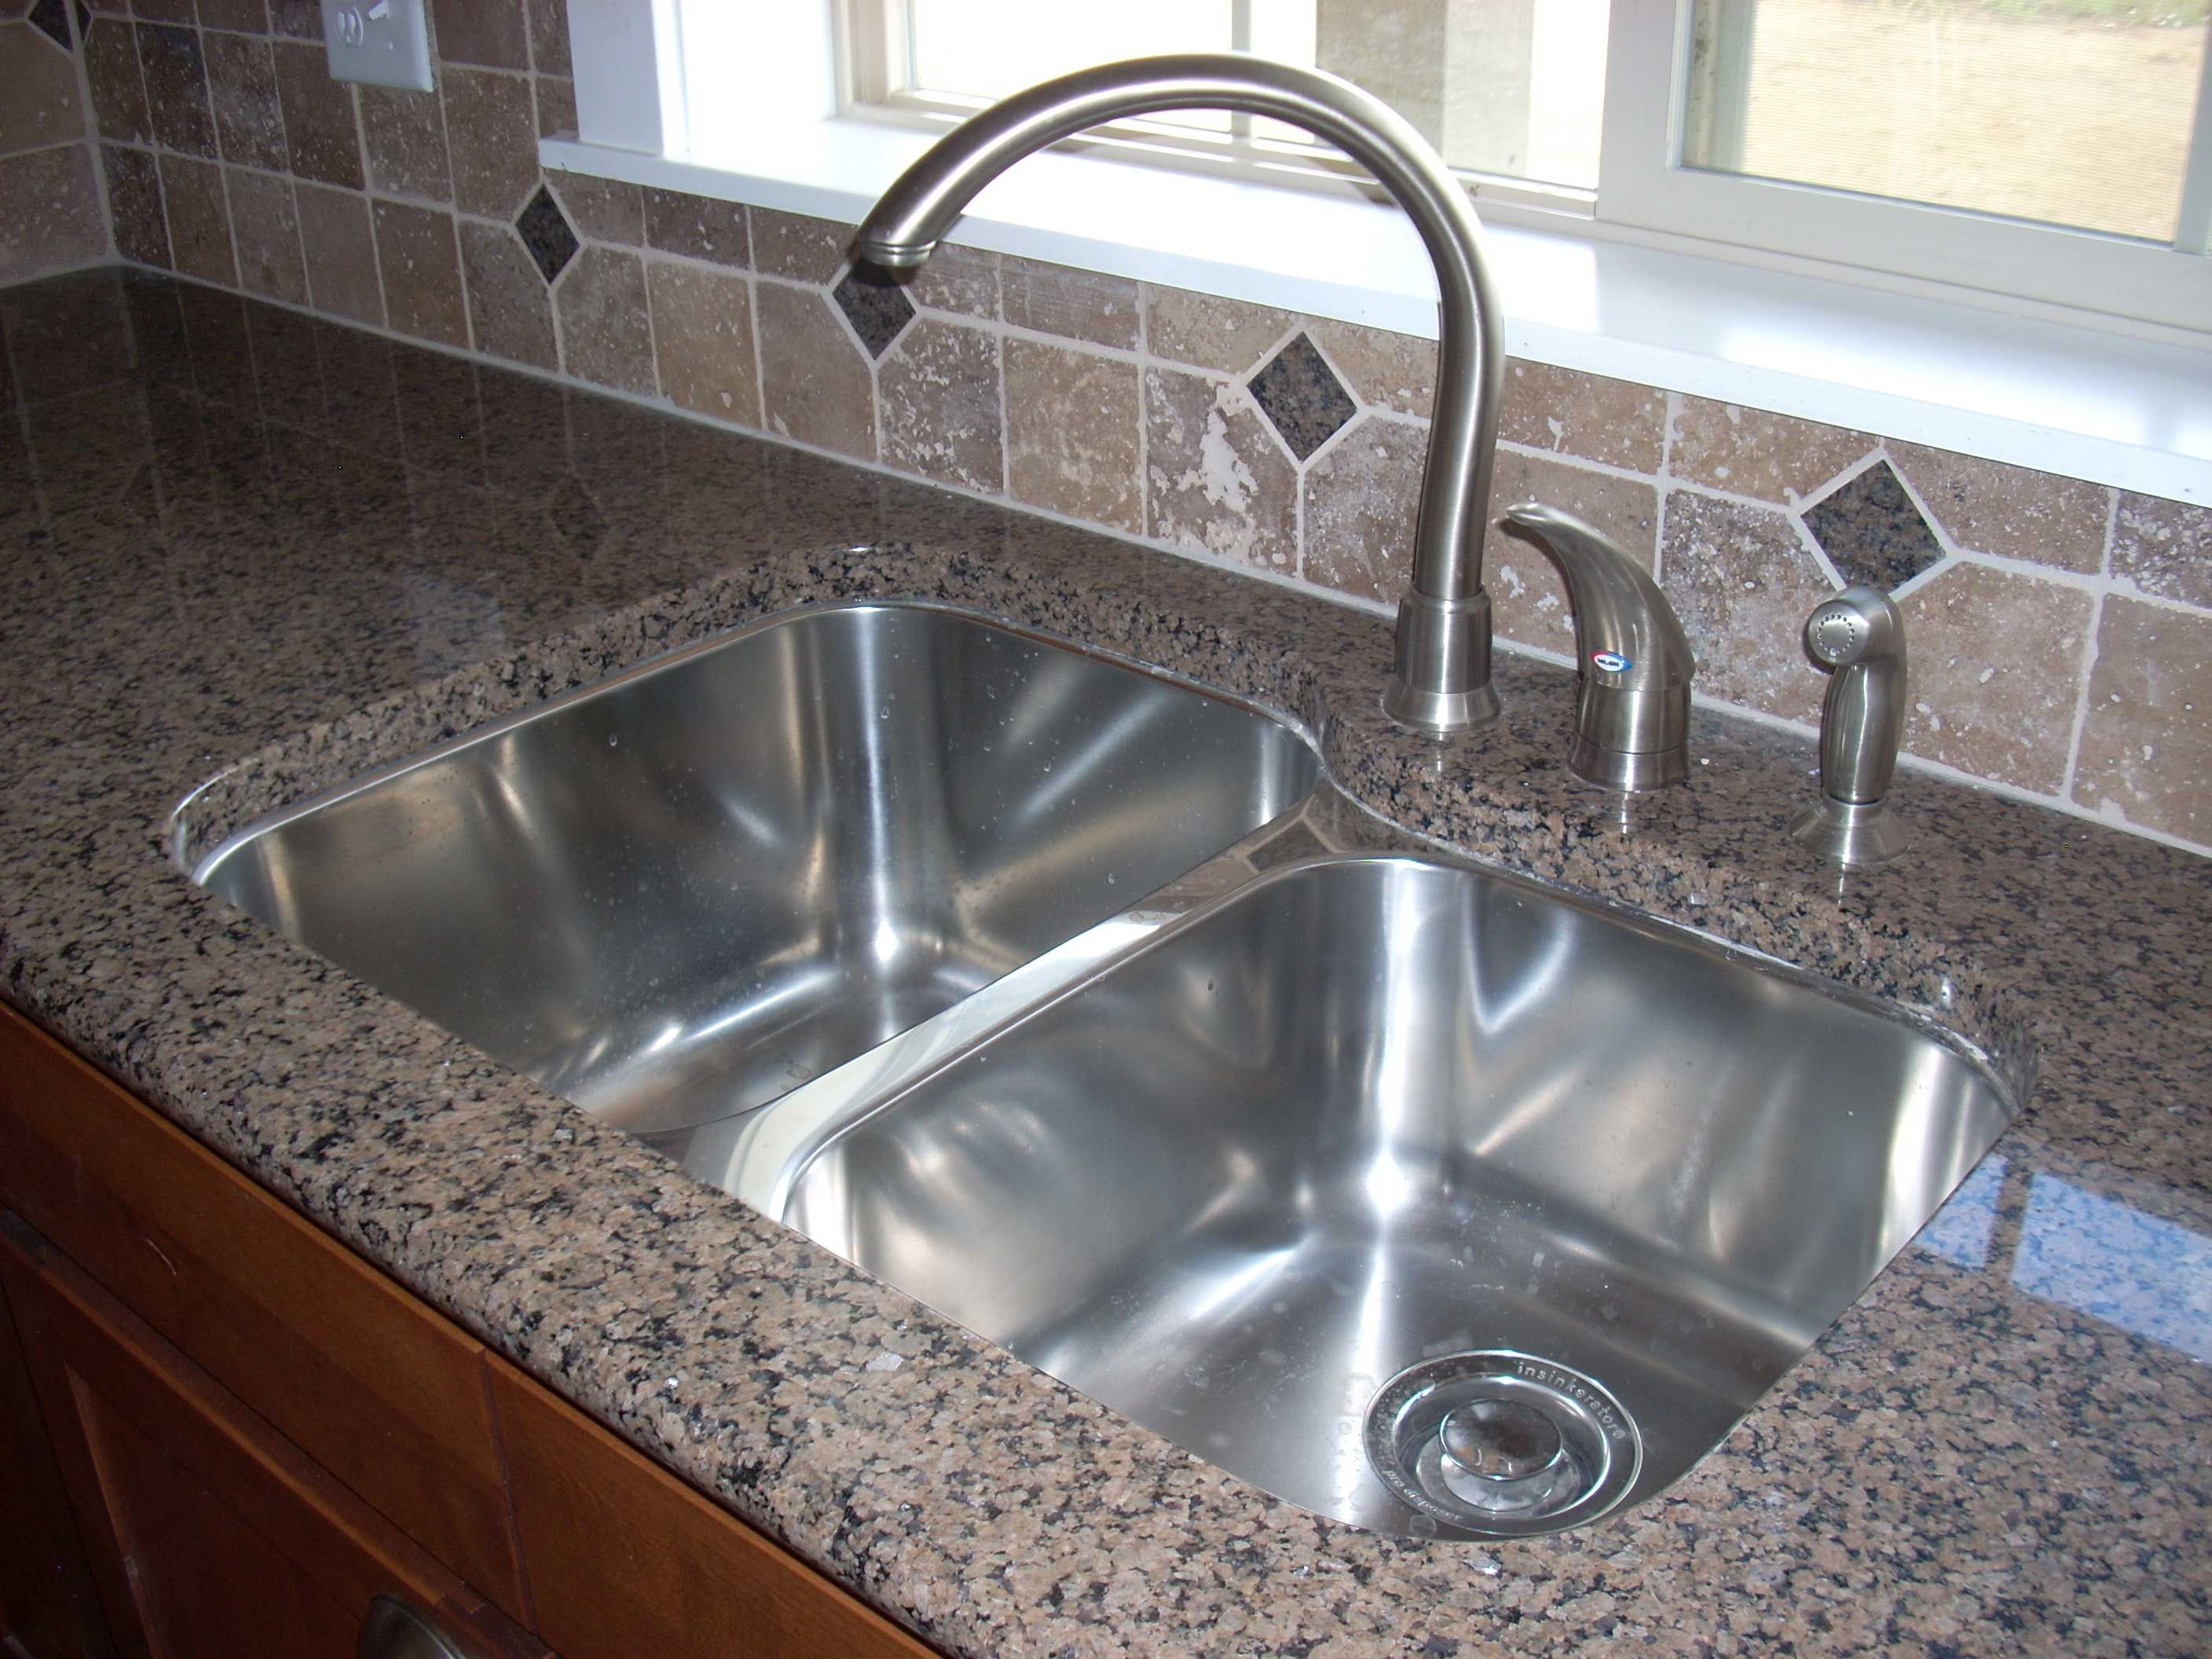 Kitchen Sinks Pictures New in House Designerraleigh kitchen